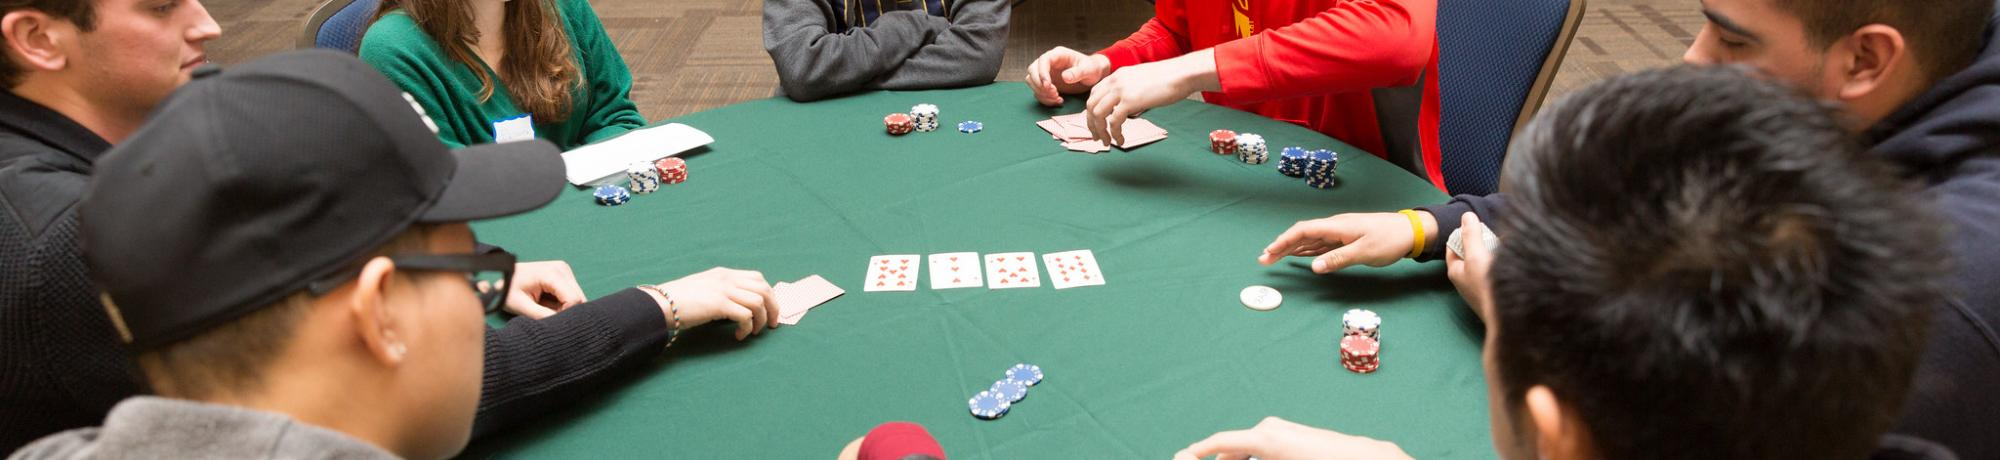 Boy and Girls playing Poker together at the ARC Ballroom